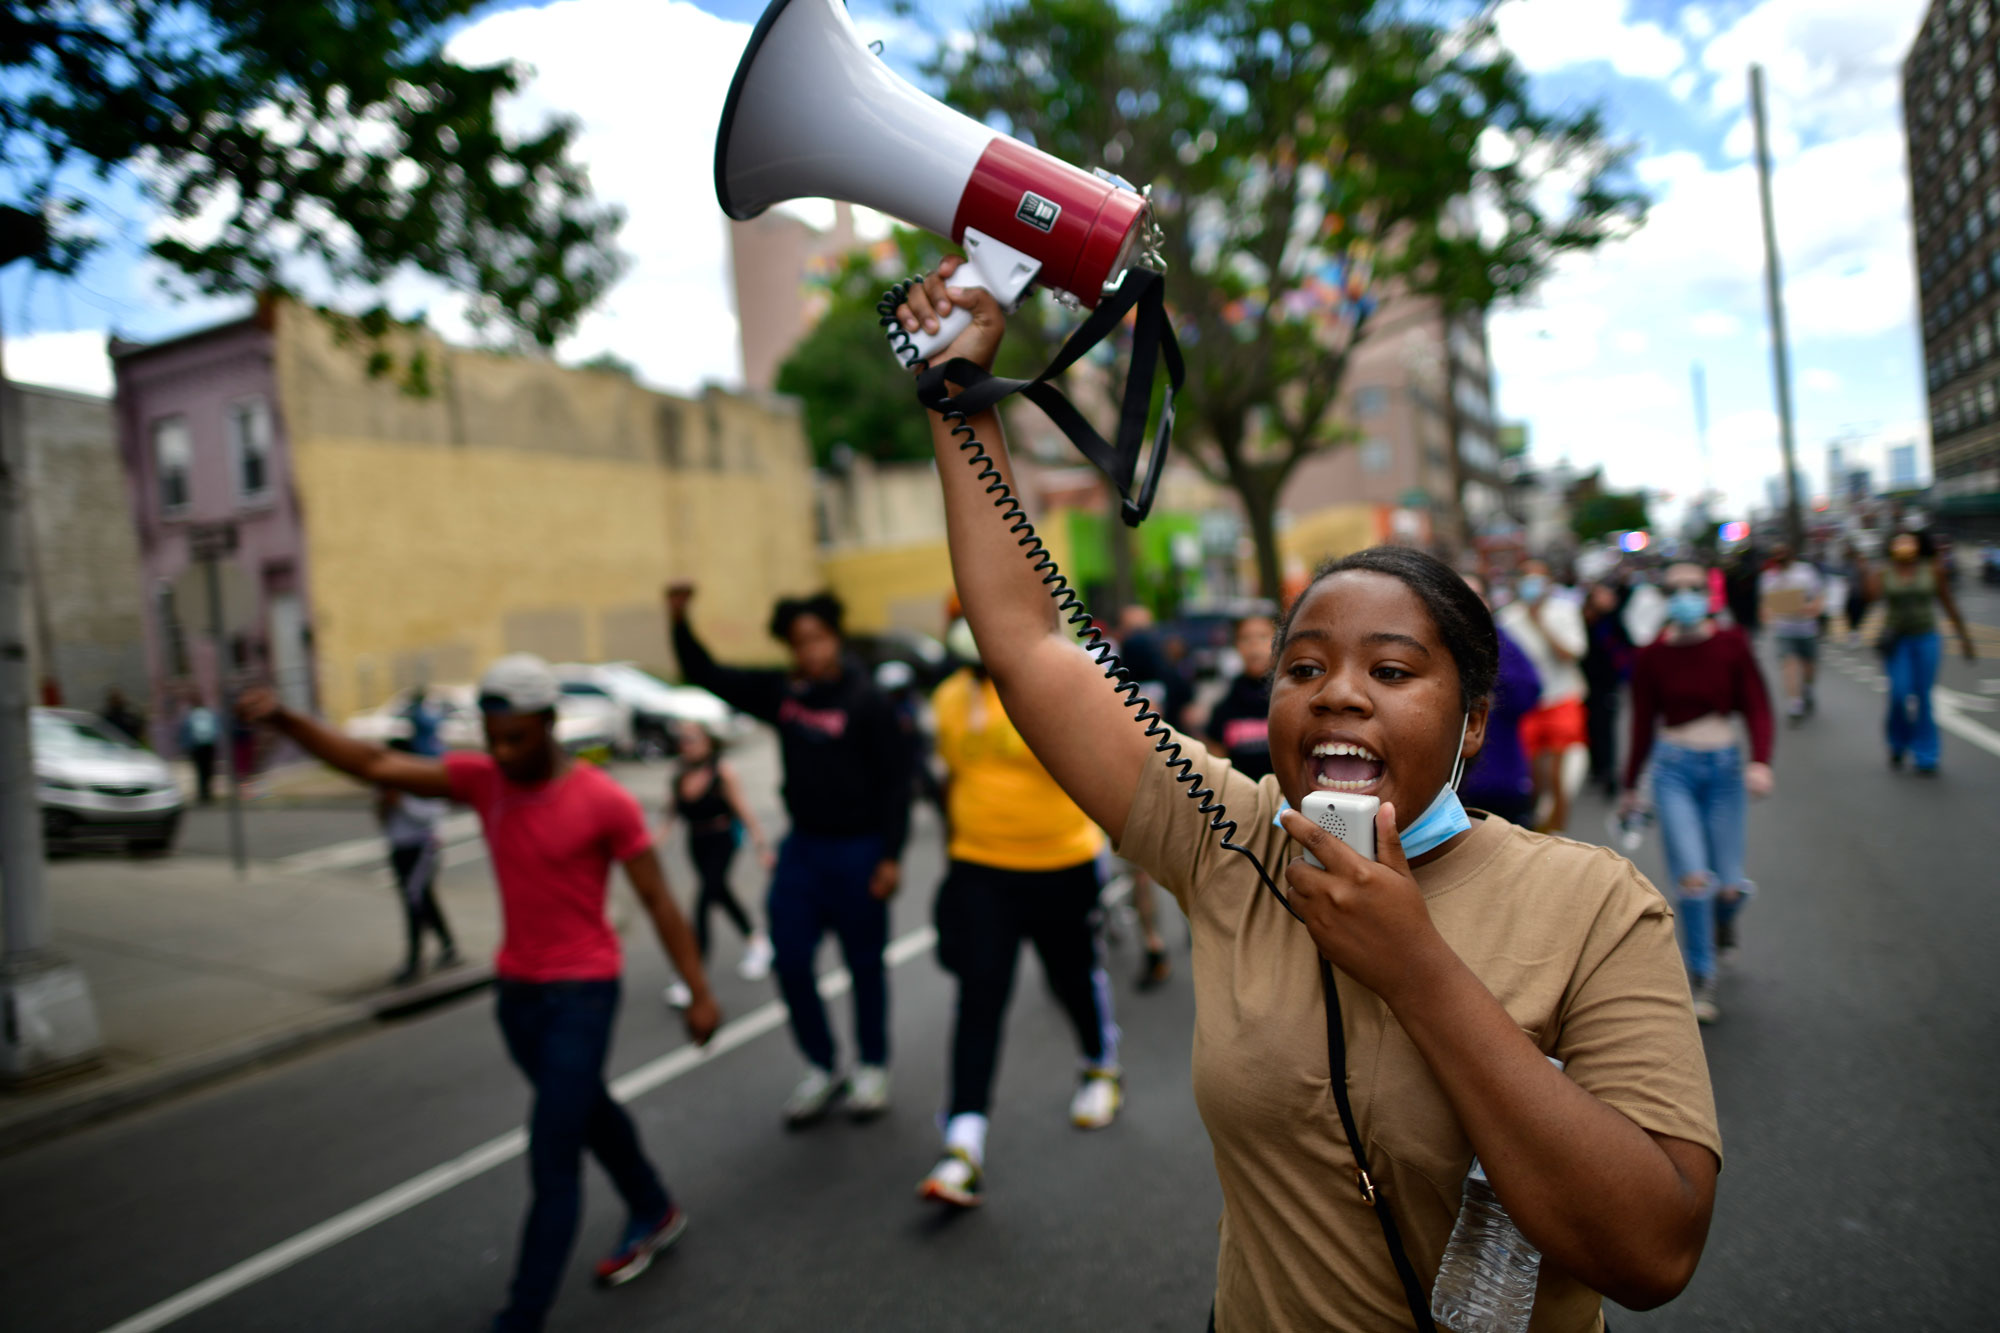 Protesters march in Philadelphia on Monday, June 1.